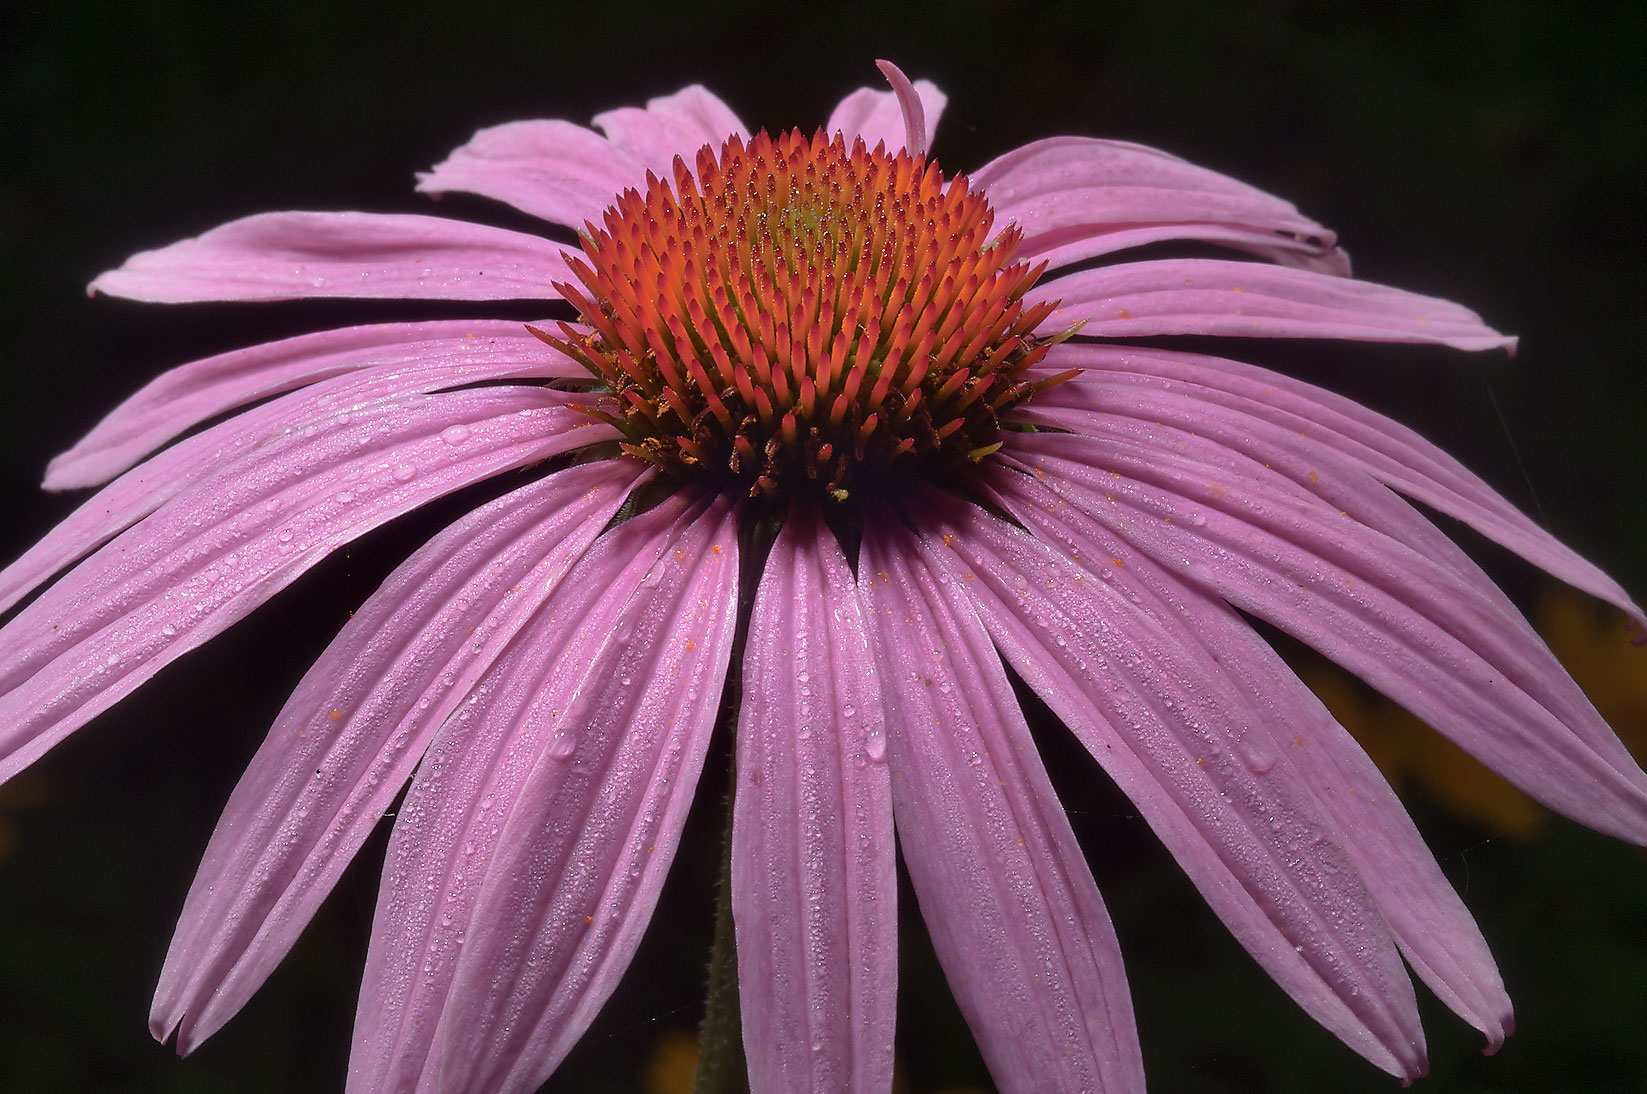 Purple coneflower in Mercer Arboretum and Botanical Gardens. Humble (Houston area), Texas